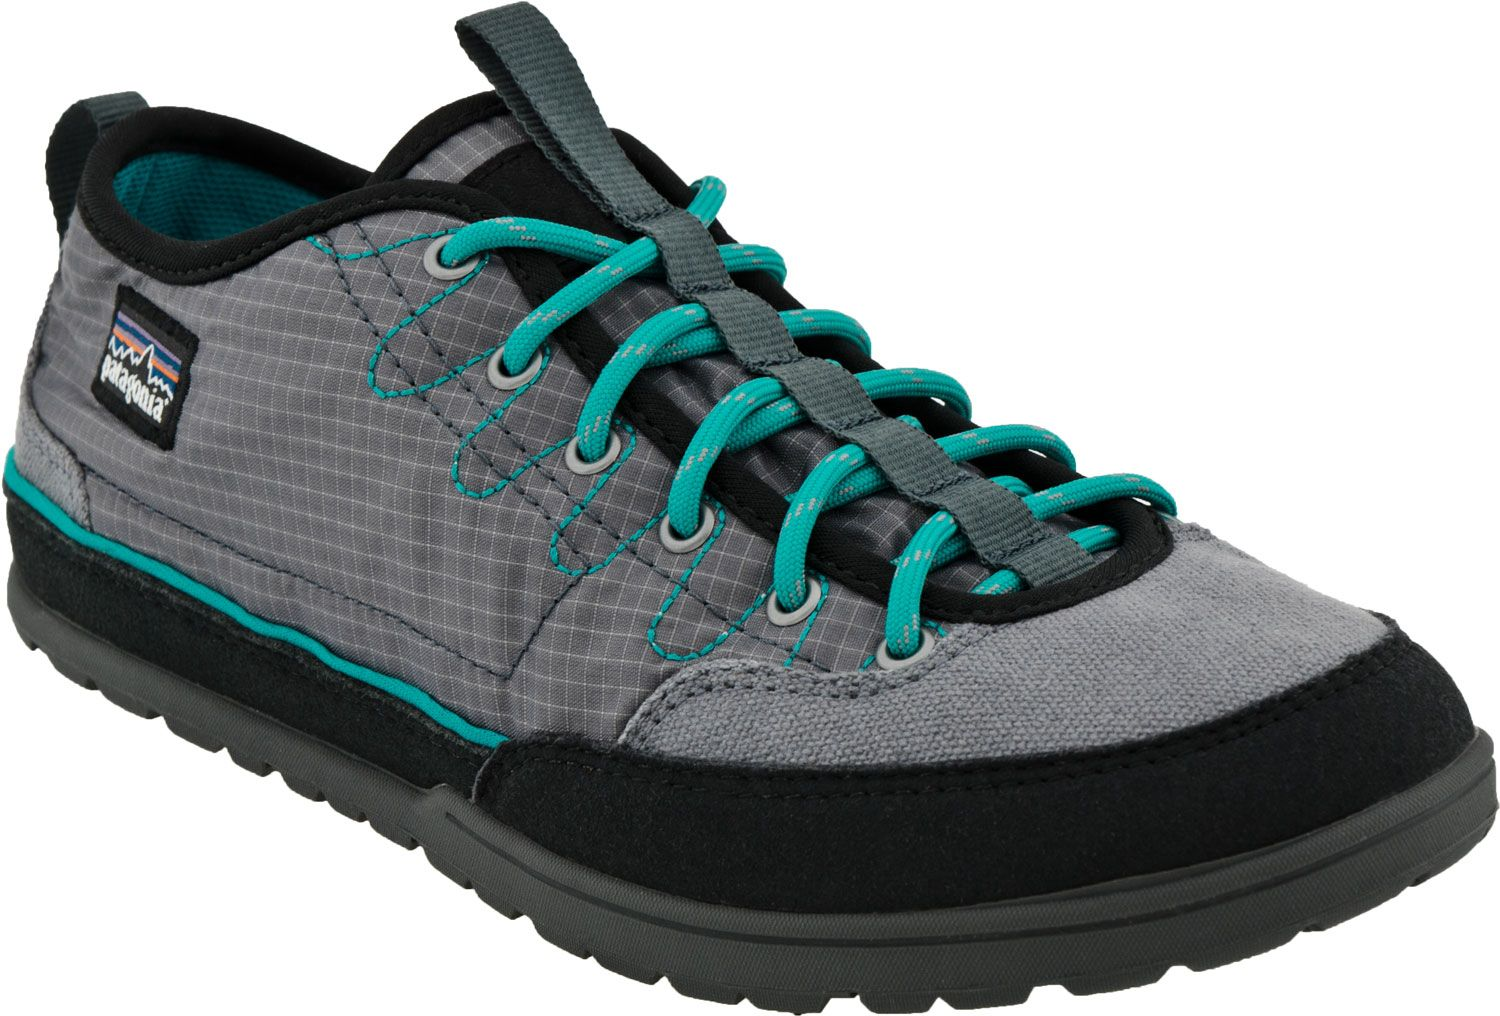 7651e3970fc Patagonia Activist (Tidal Teal/Lotus) | gear • geekery • tech ...